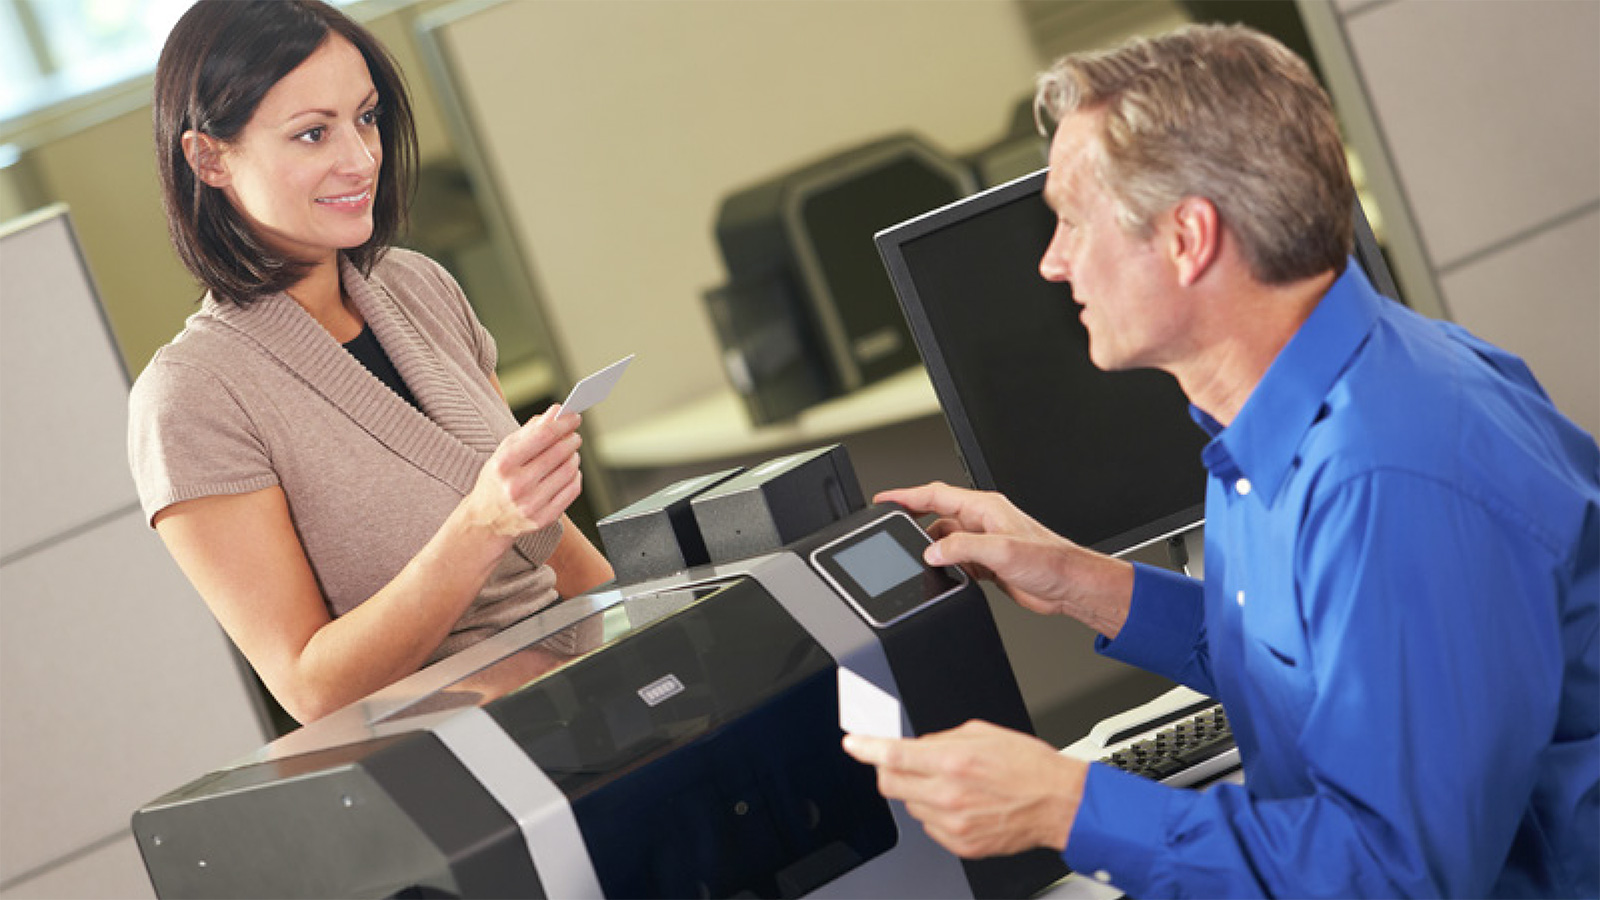 FARGO ID Card Printer Systems - Printing ID Cards